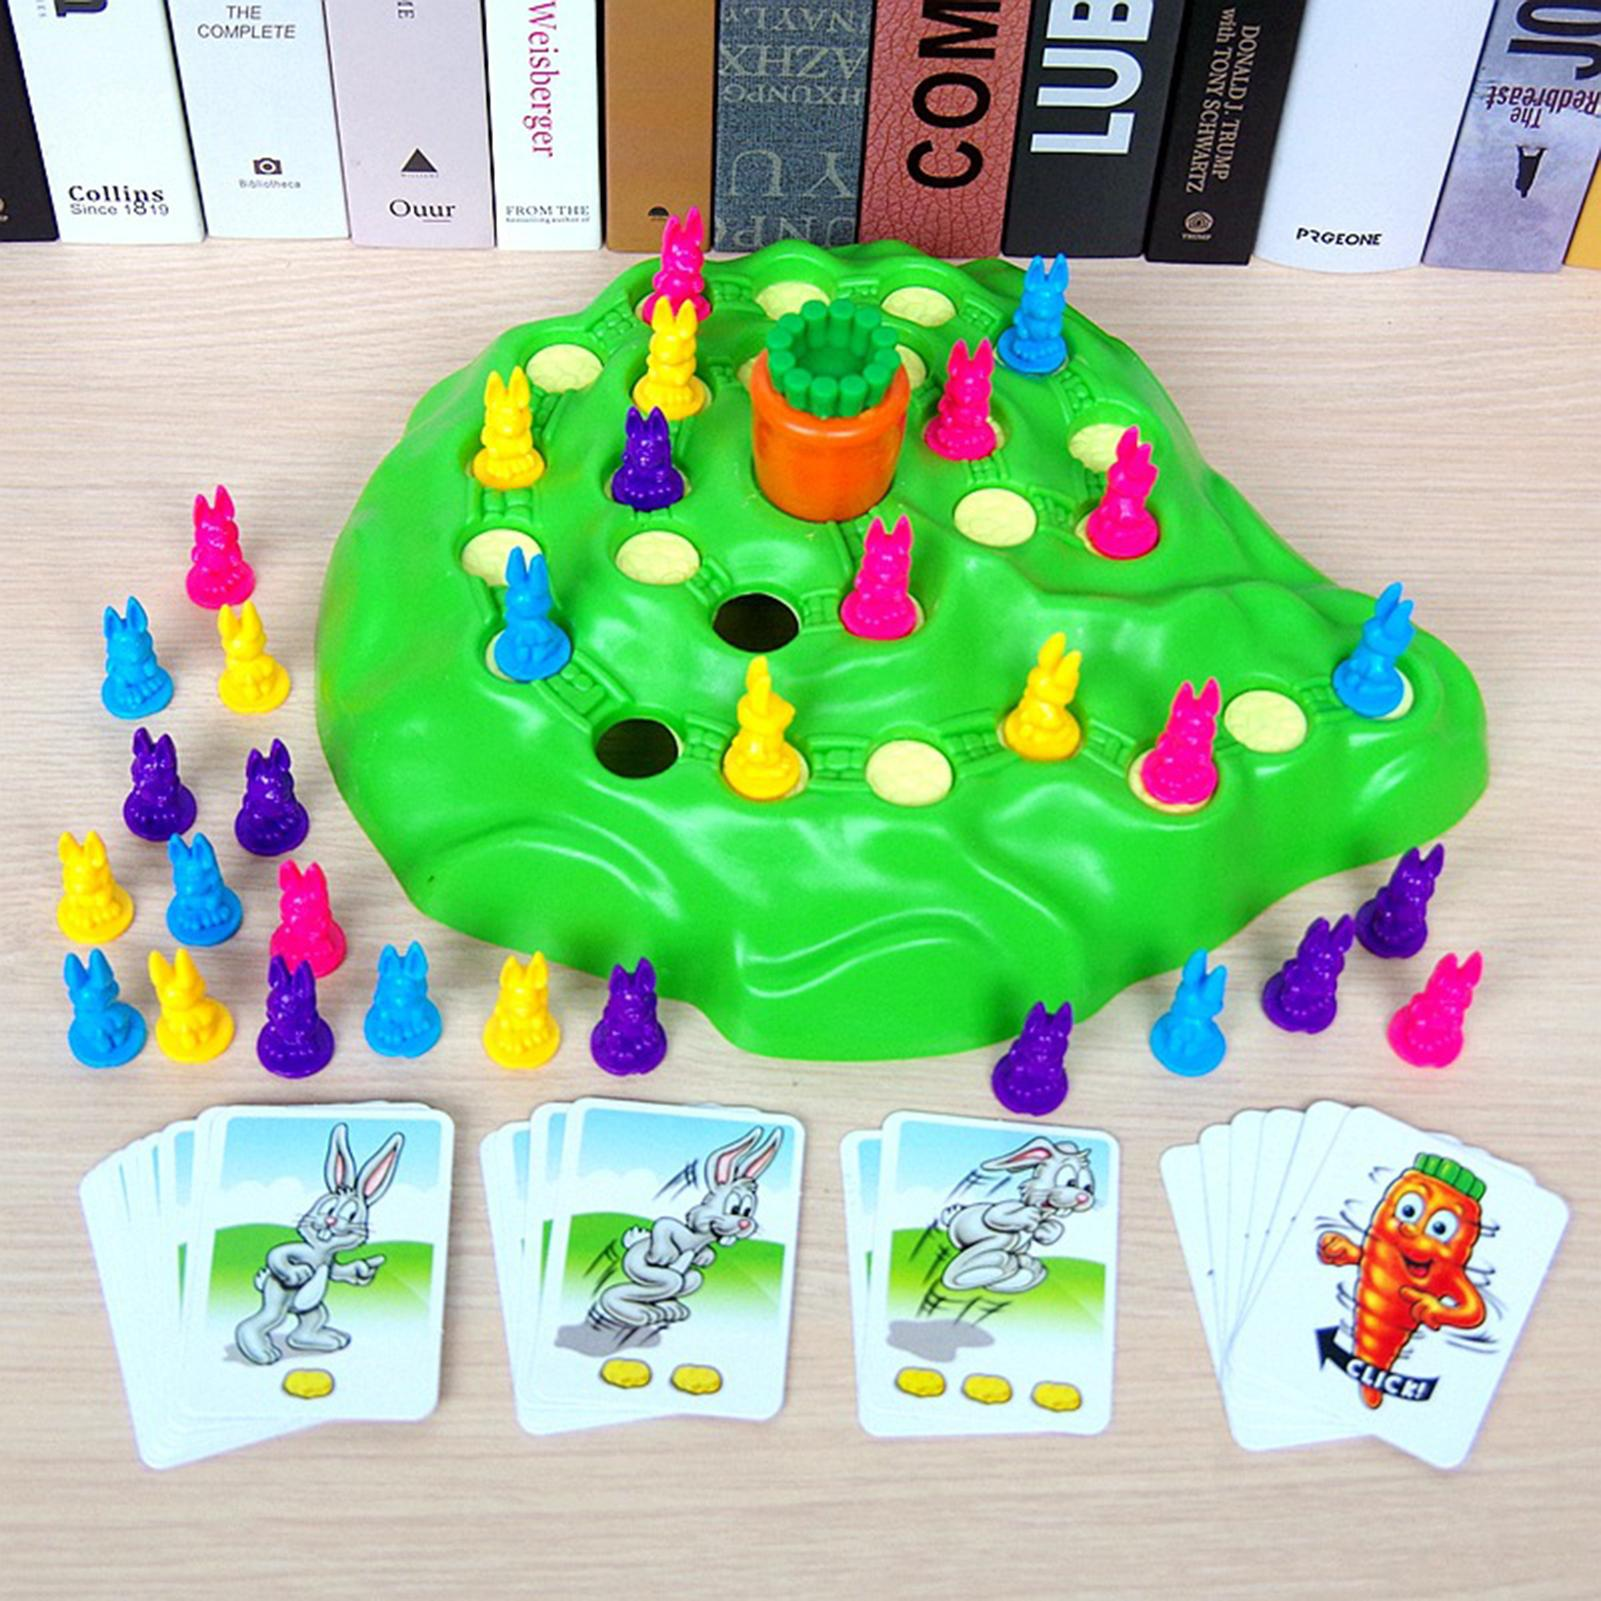 Rabbit Trap Set Chess Carrot Adventure Parent-child Interactive Intelligence Educational Toy gift Children's Puzzle Game